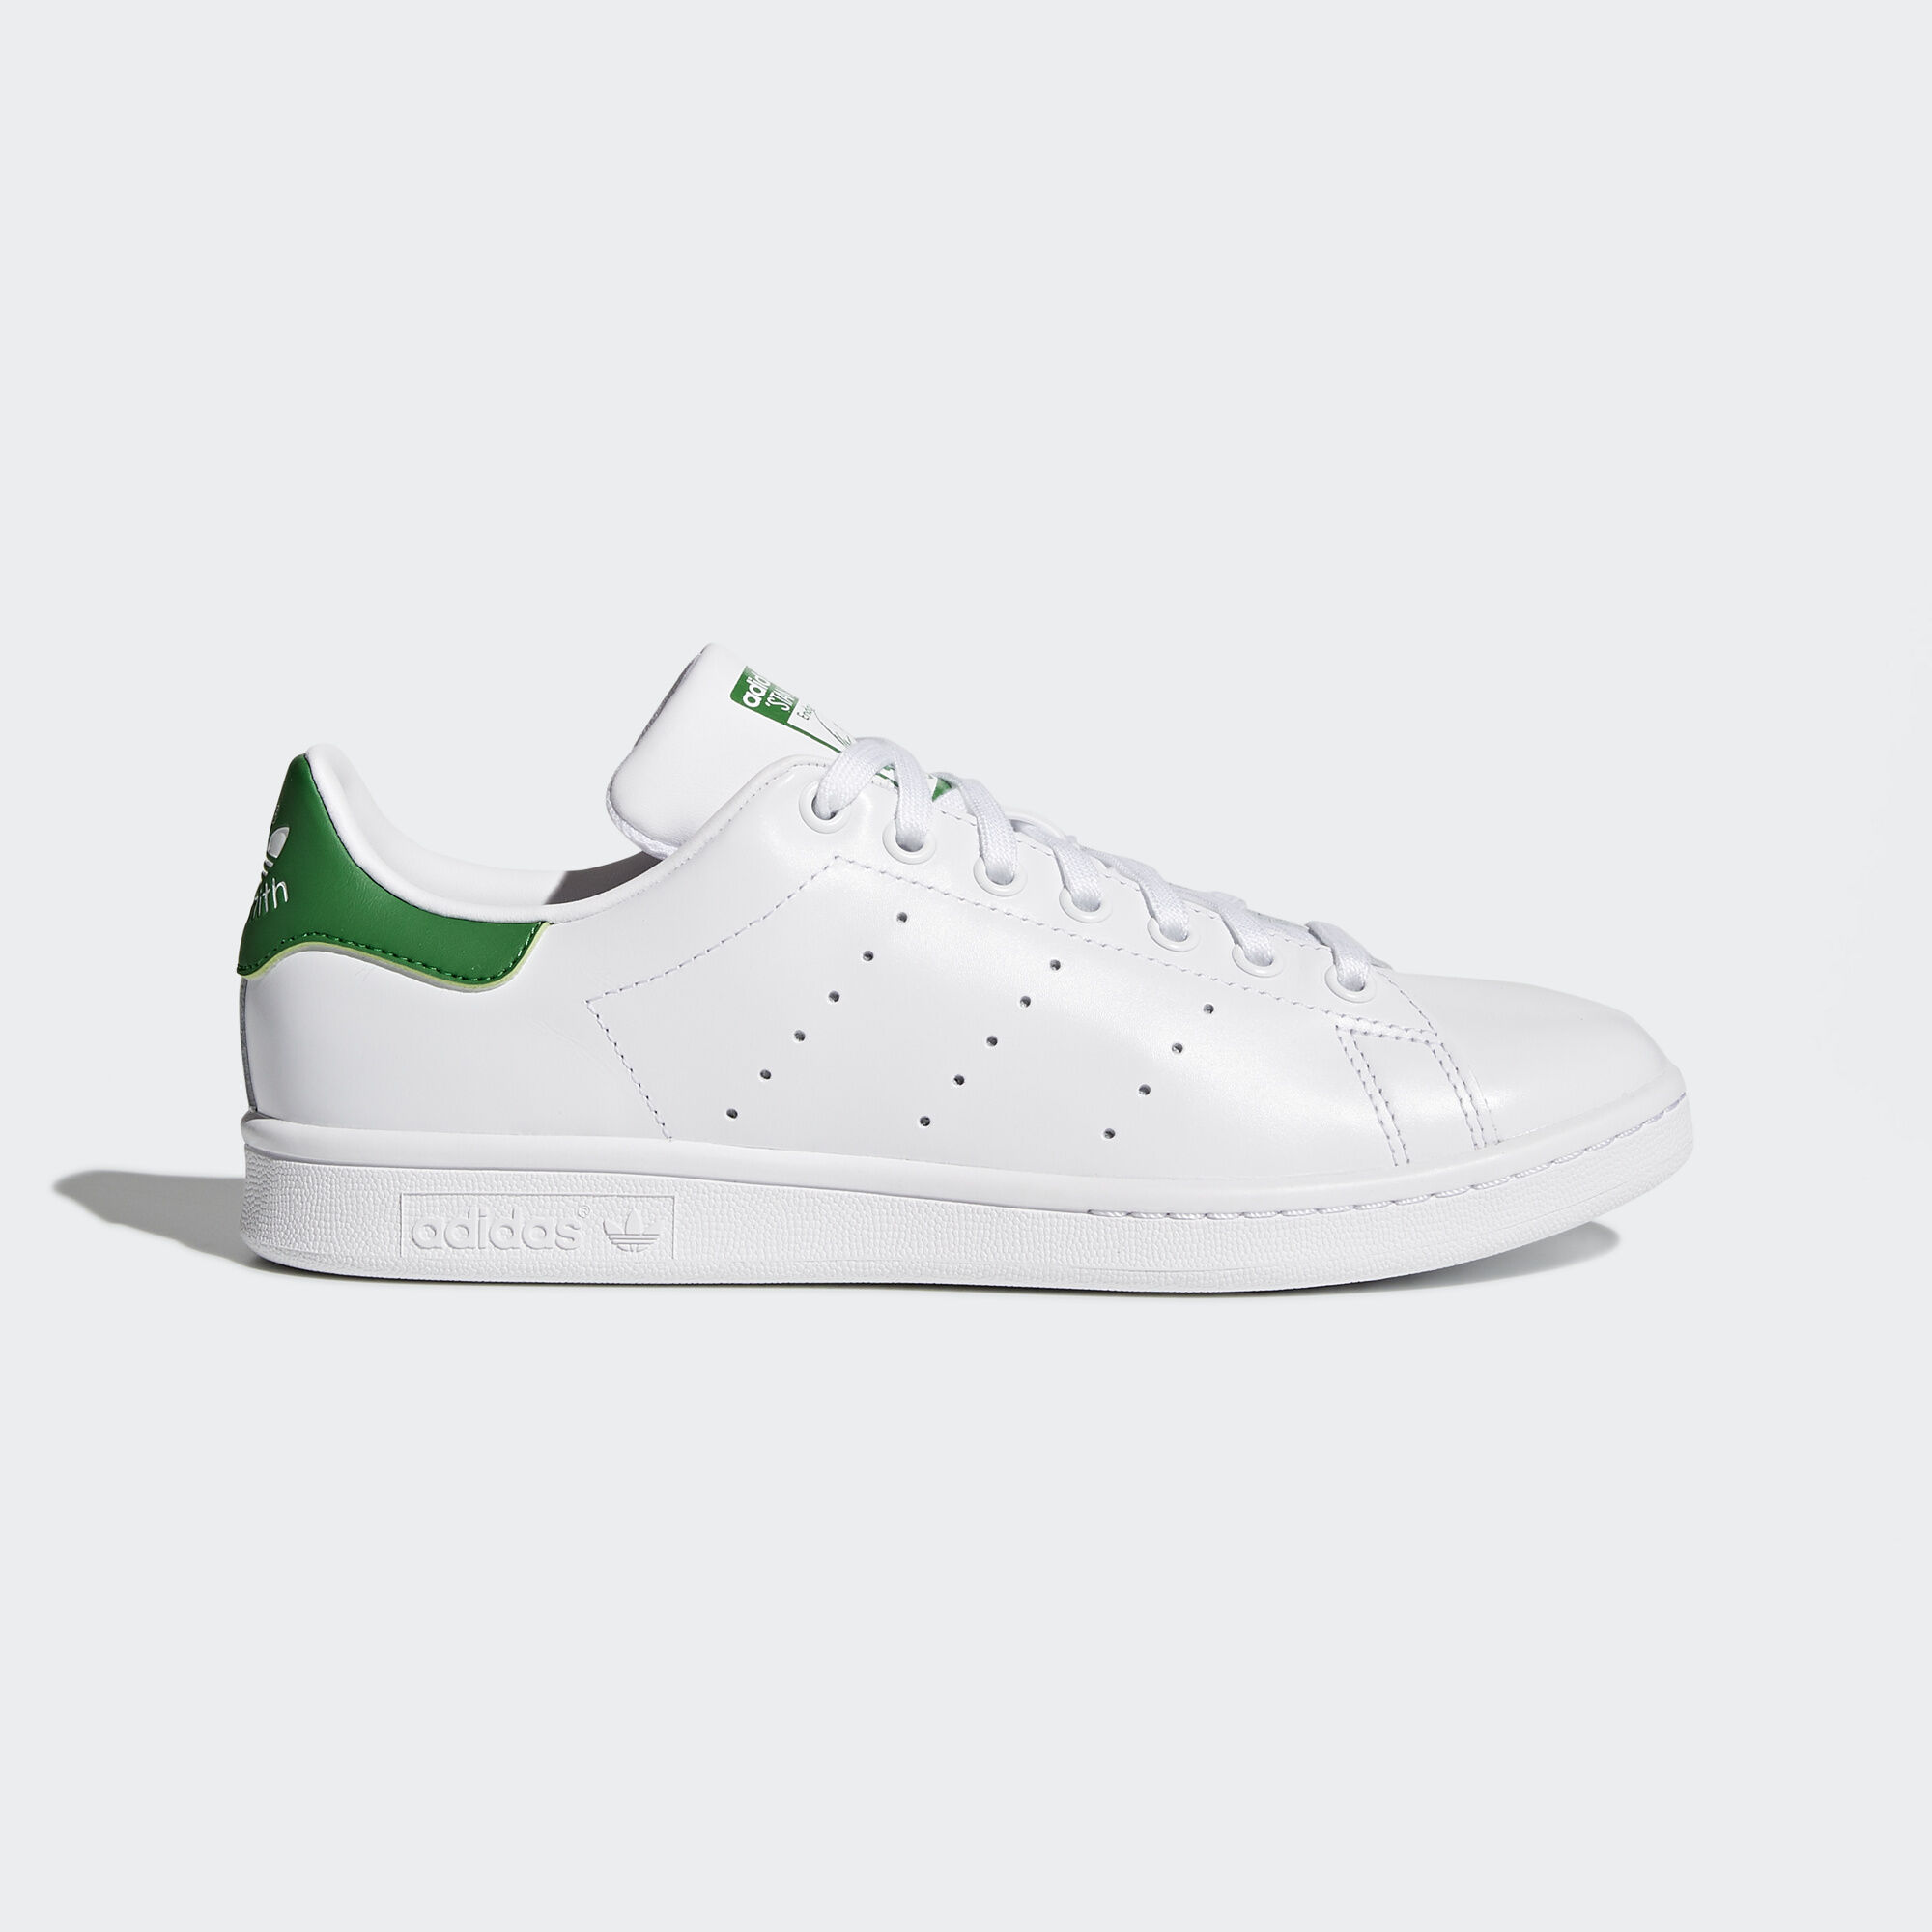 adidas sale end date